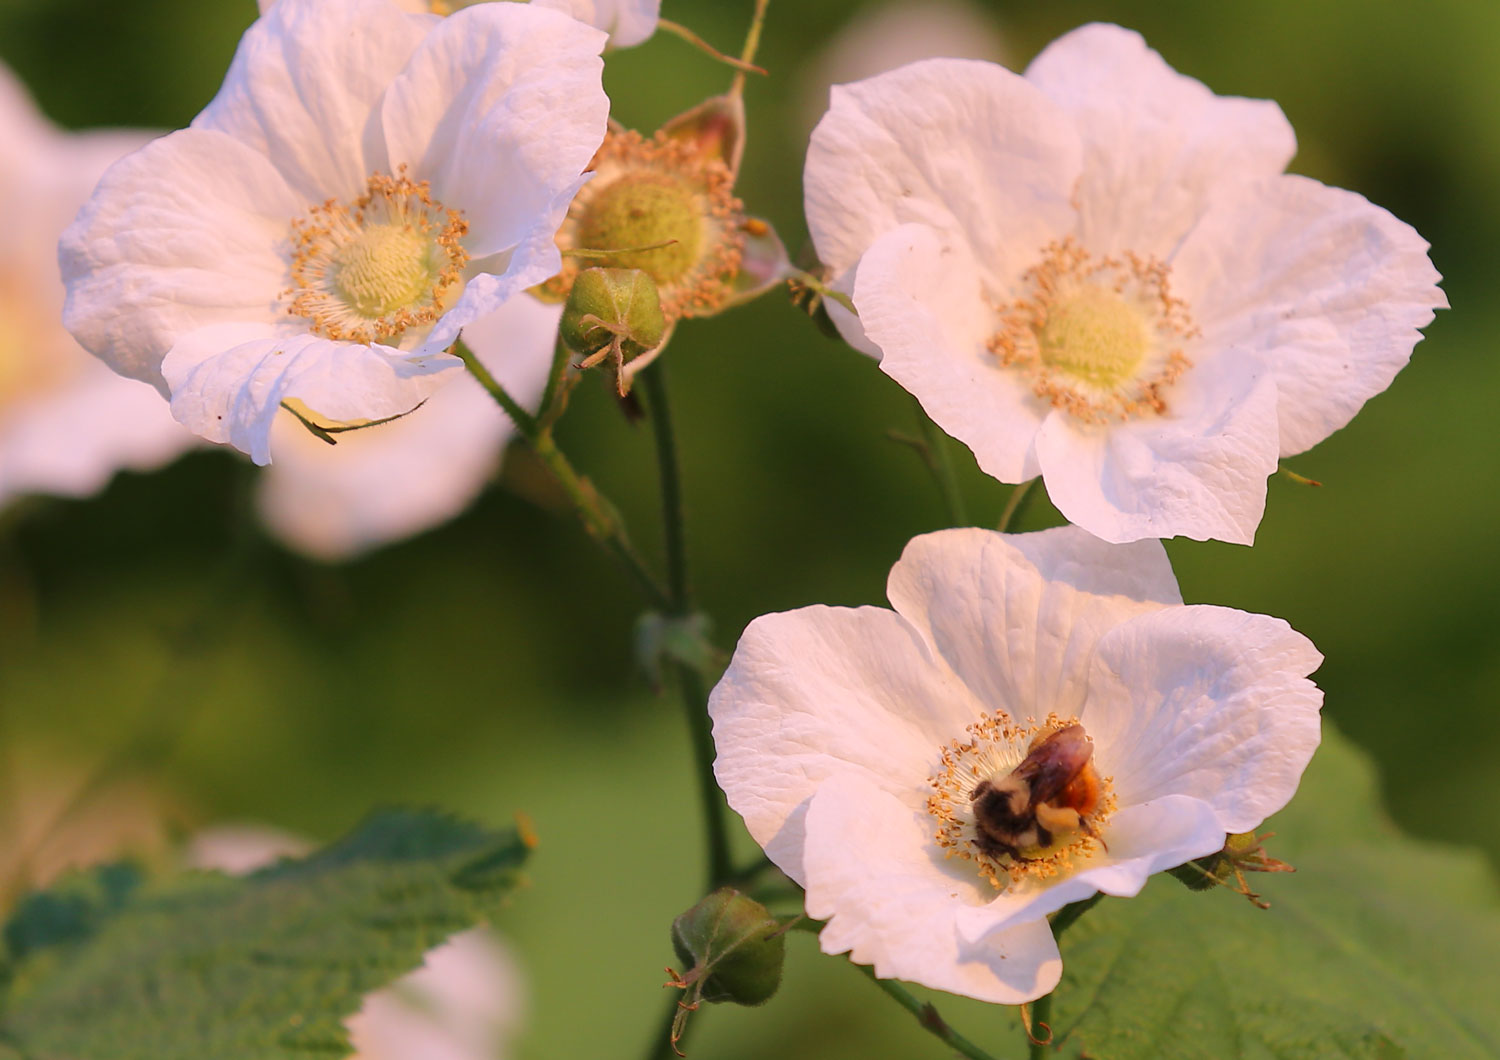 A bumblebee working thimbleberry blossoms.